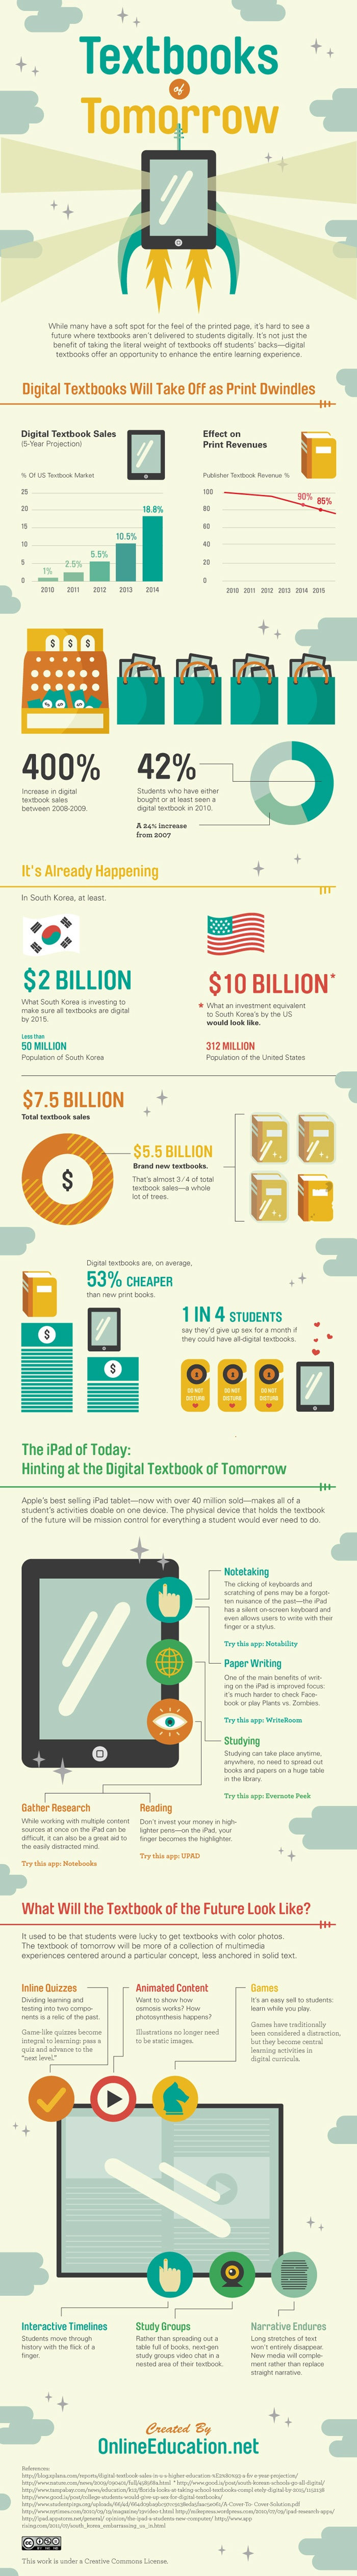 Digital textbooks are poised to take over the higher learning landscape. Learn more about digital textbooks in this awesome infographic.